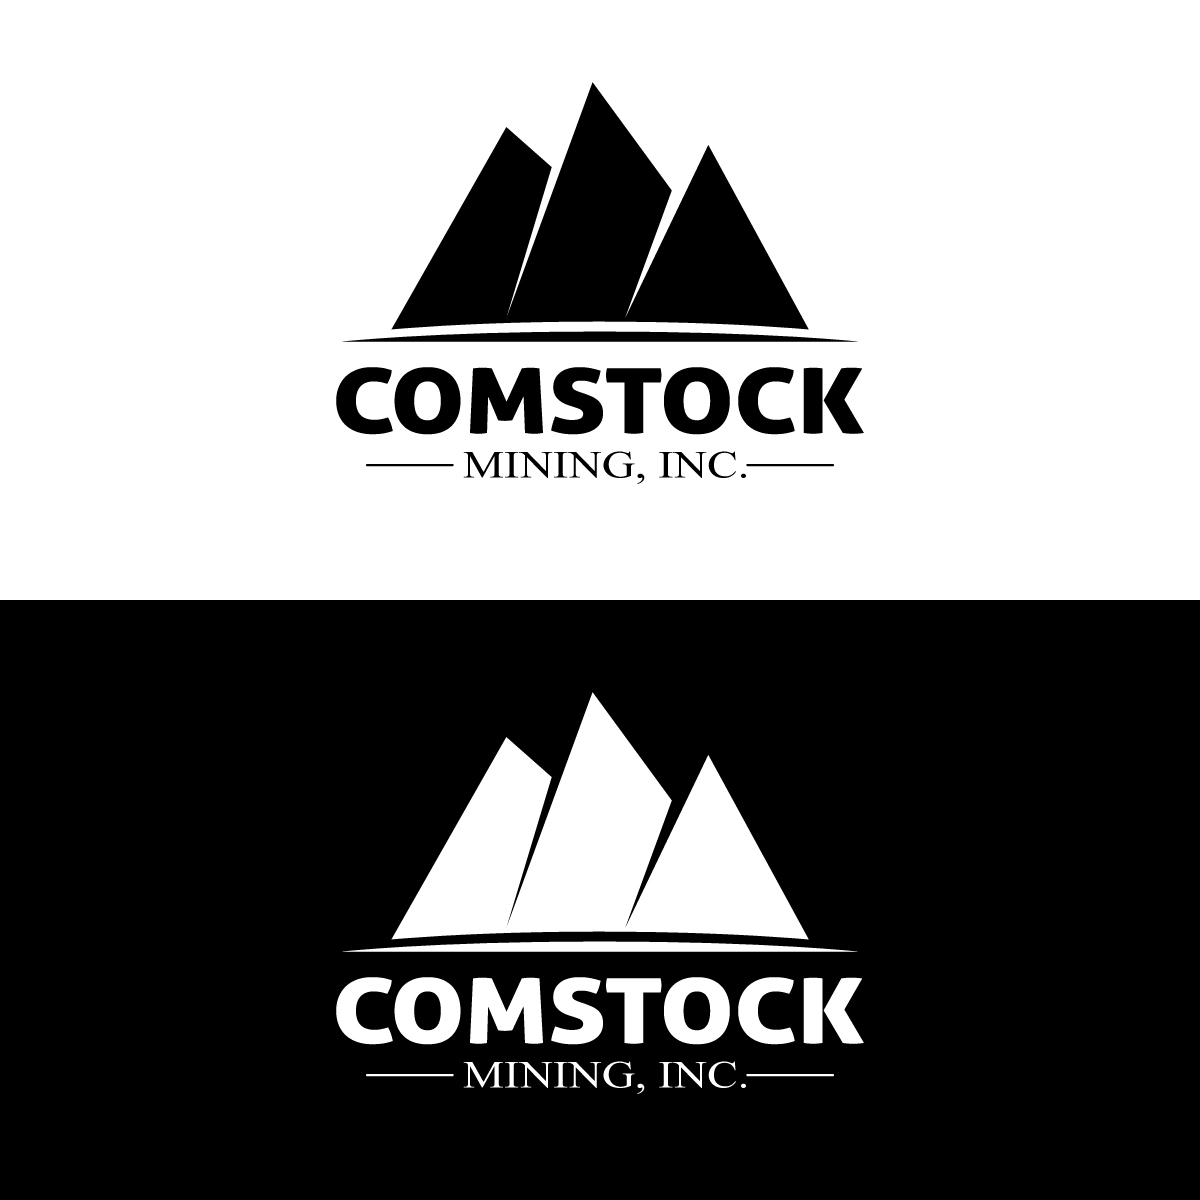 Logo Design by danelav - Entry No. 96 in the Logo Design Contest Captivating Logo Design for Comstock Mining, Inc..